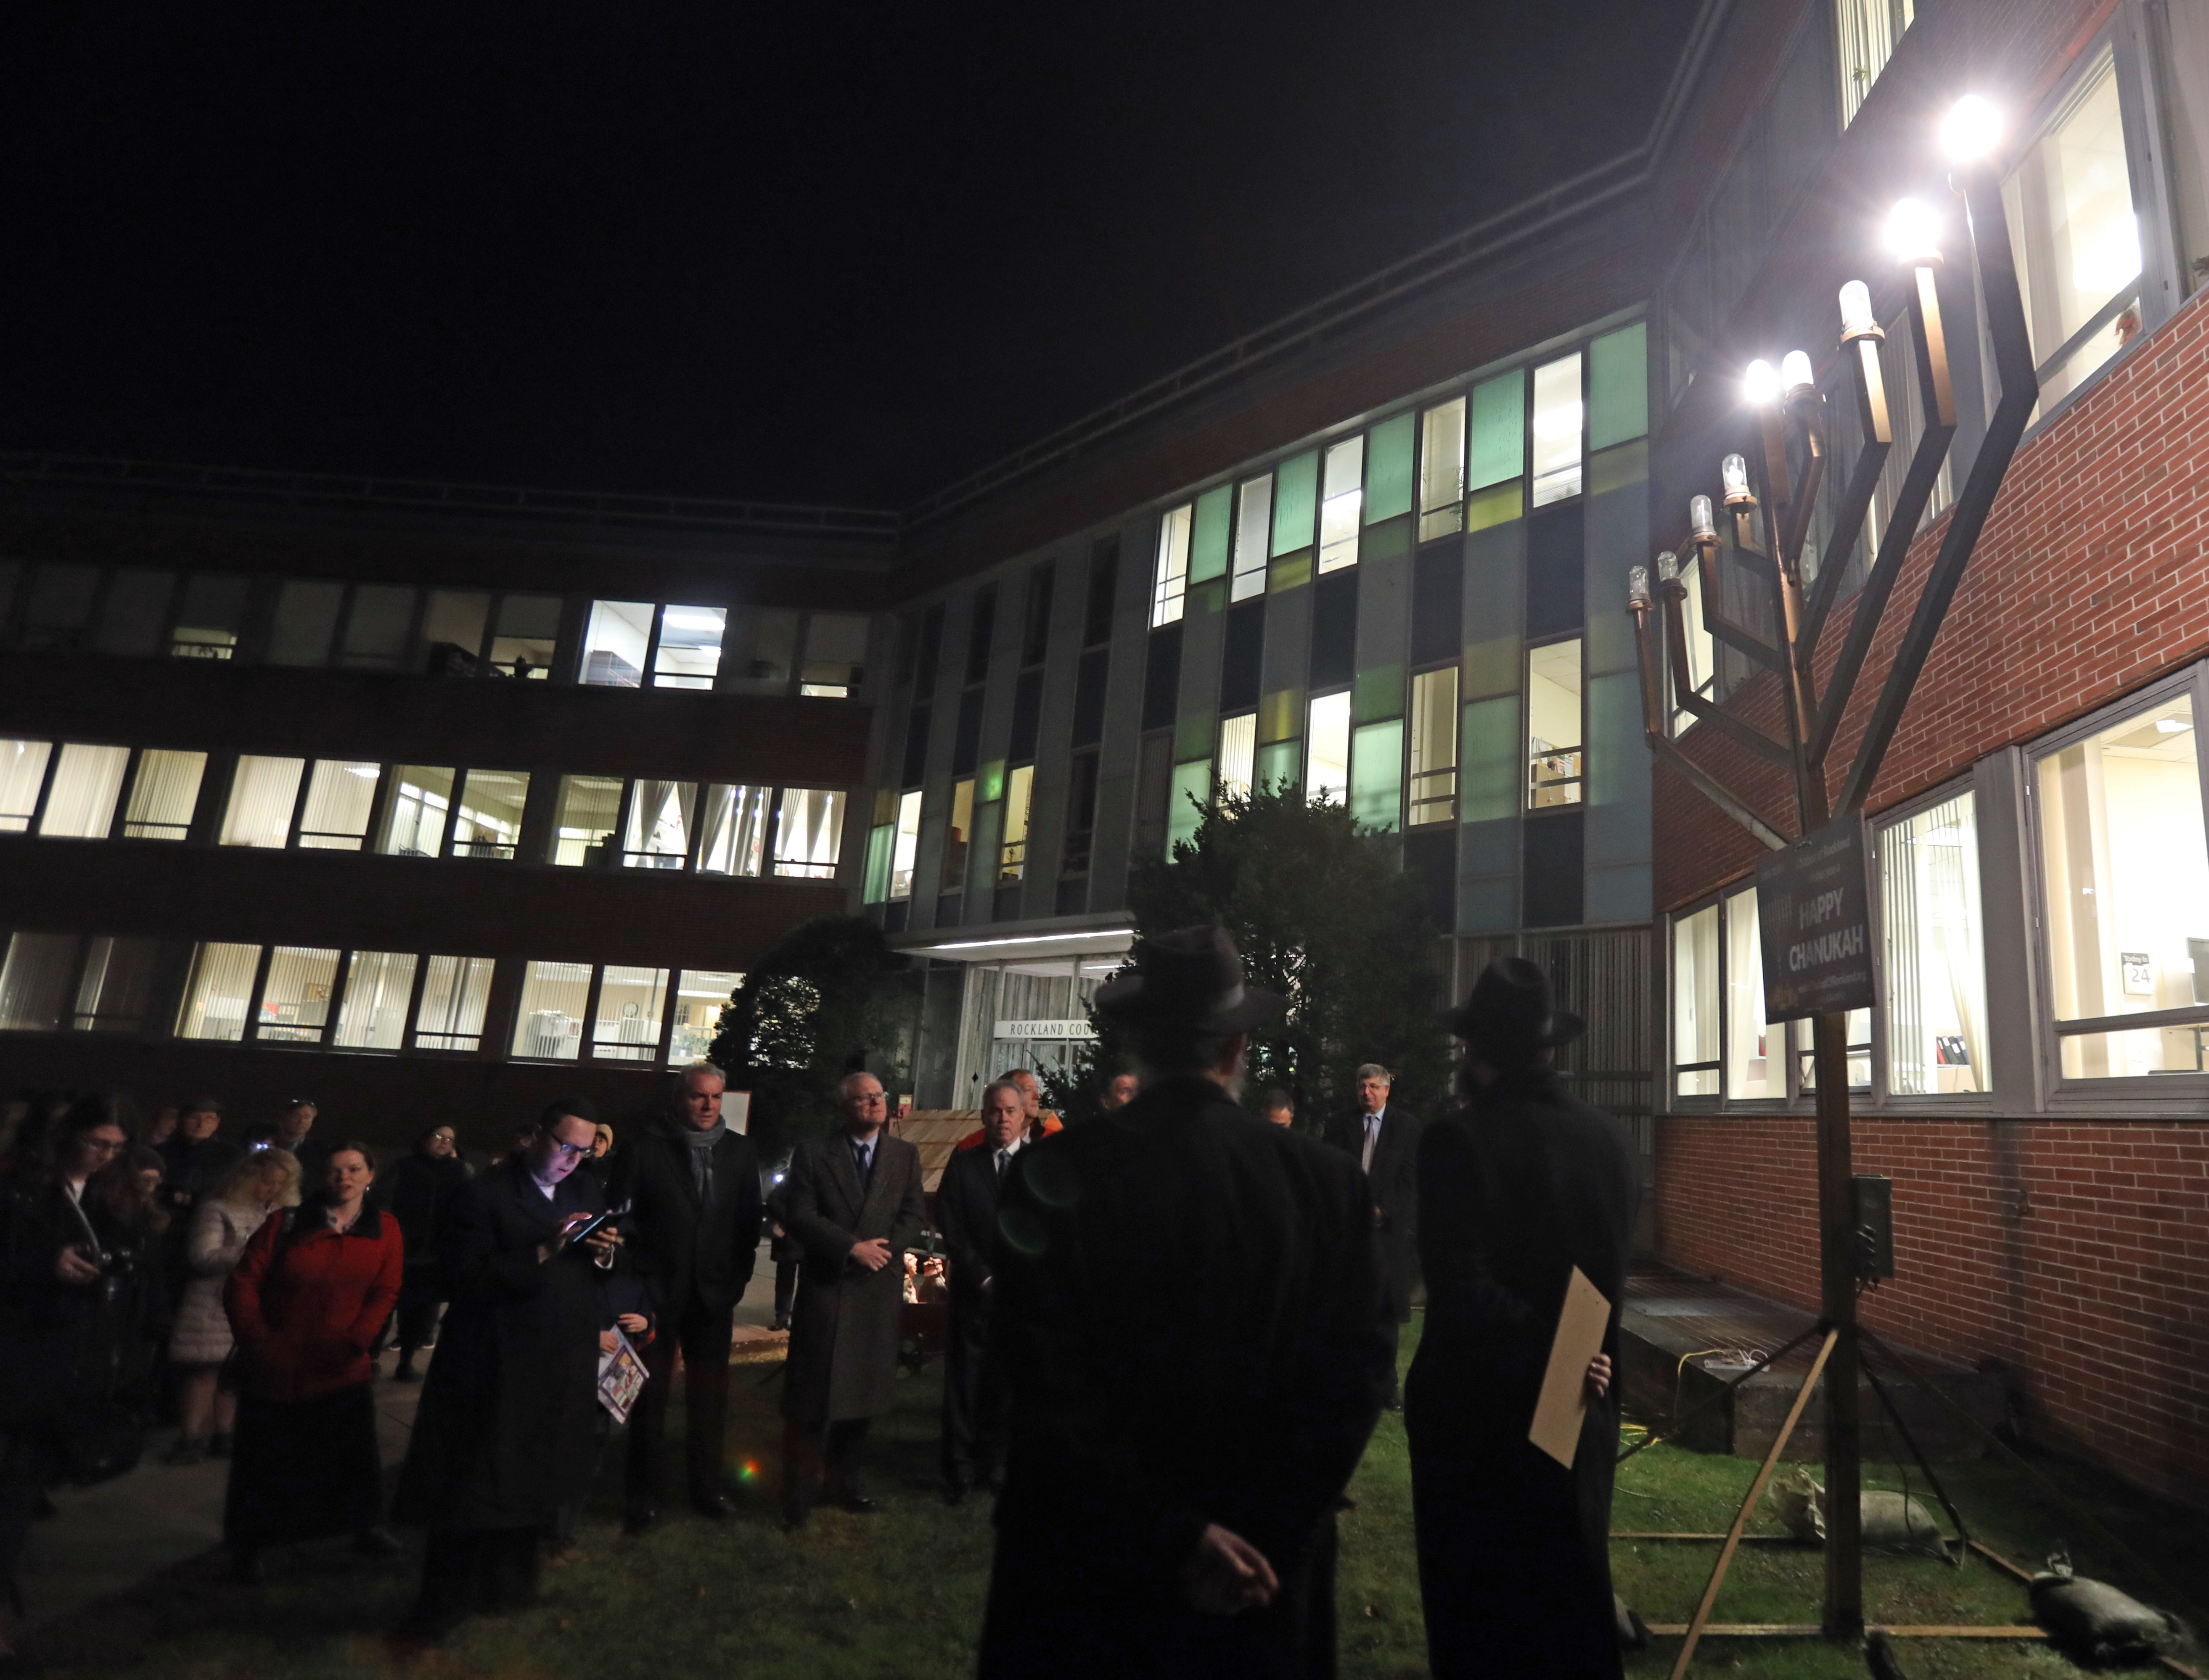 Rabbi Avremel Kotlarsky, regional director of Chabad Lubavitch of Rockland speaks during The Lighting of the Menorah on the second night of Hanukkah at the Rockland County Office Building in New City Dec. 3, 2018.